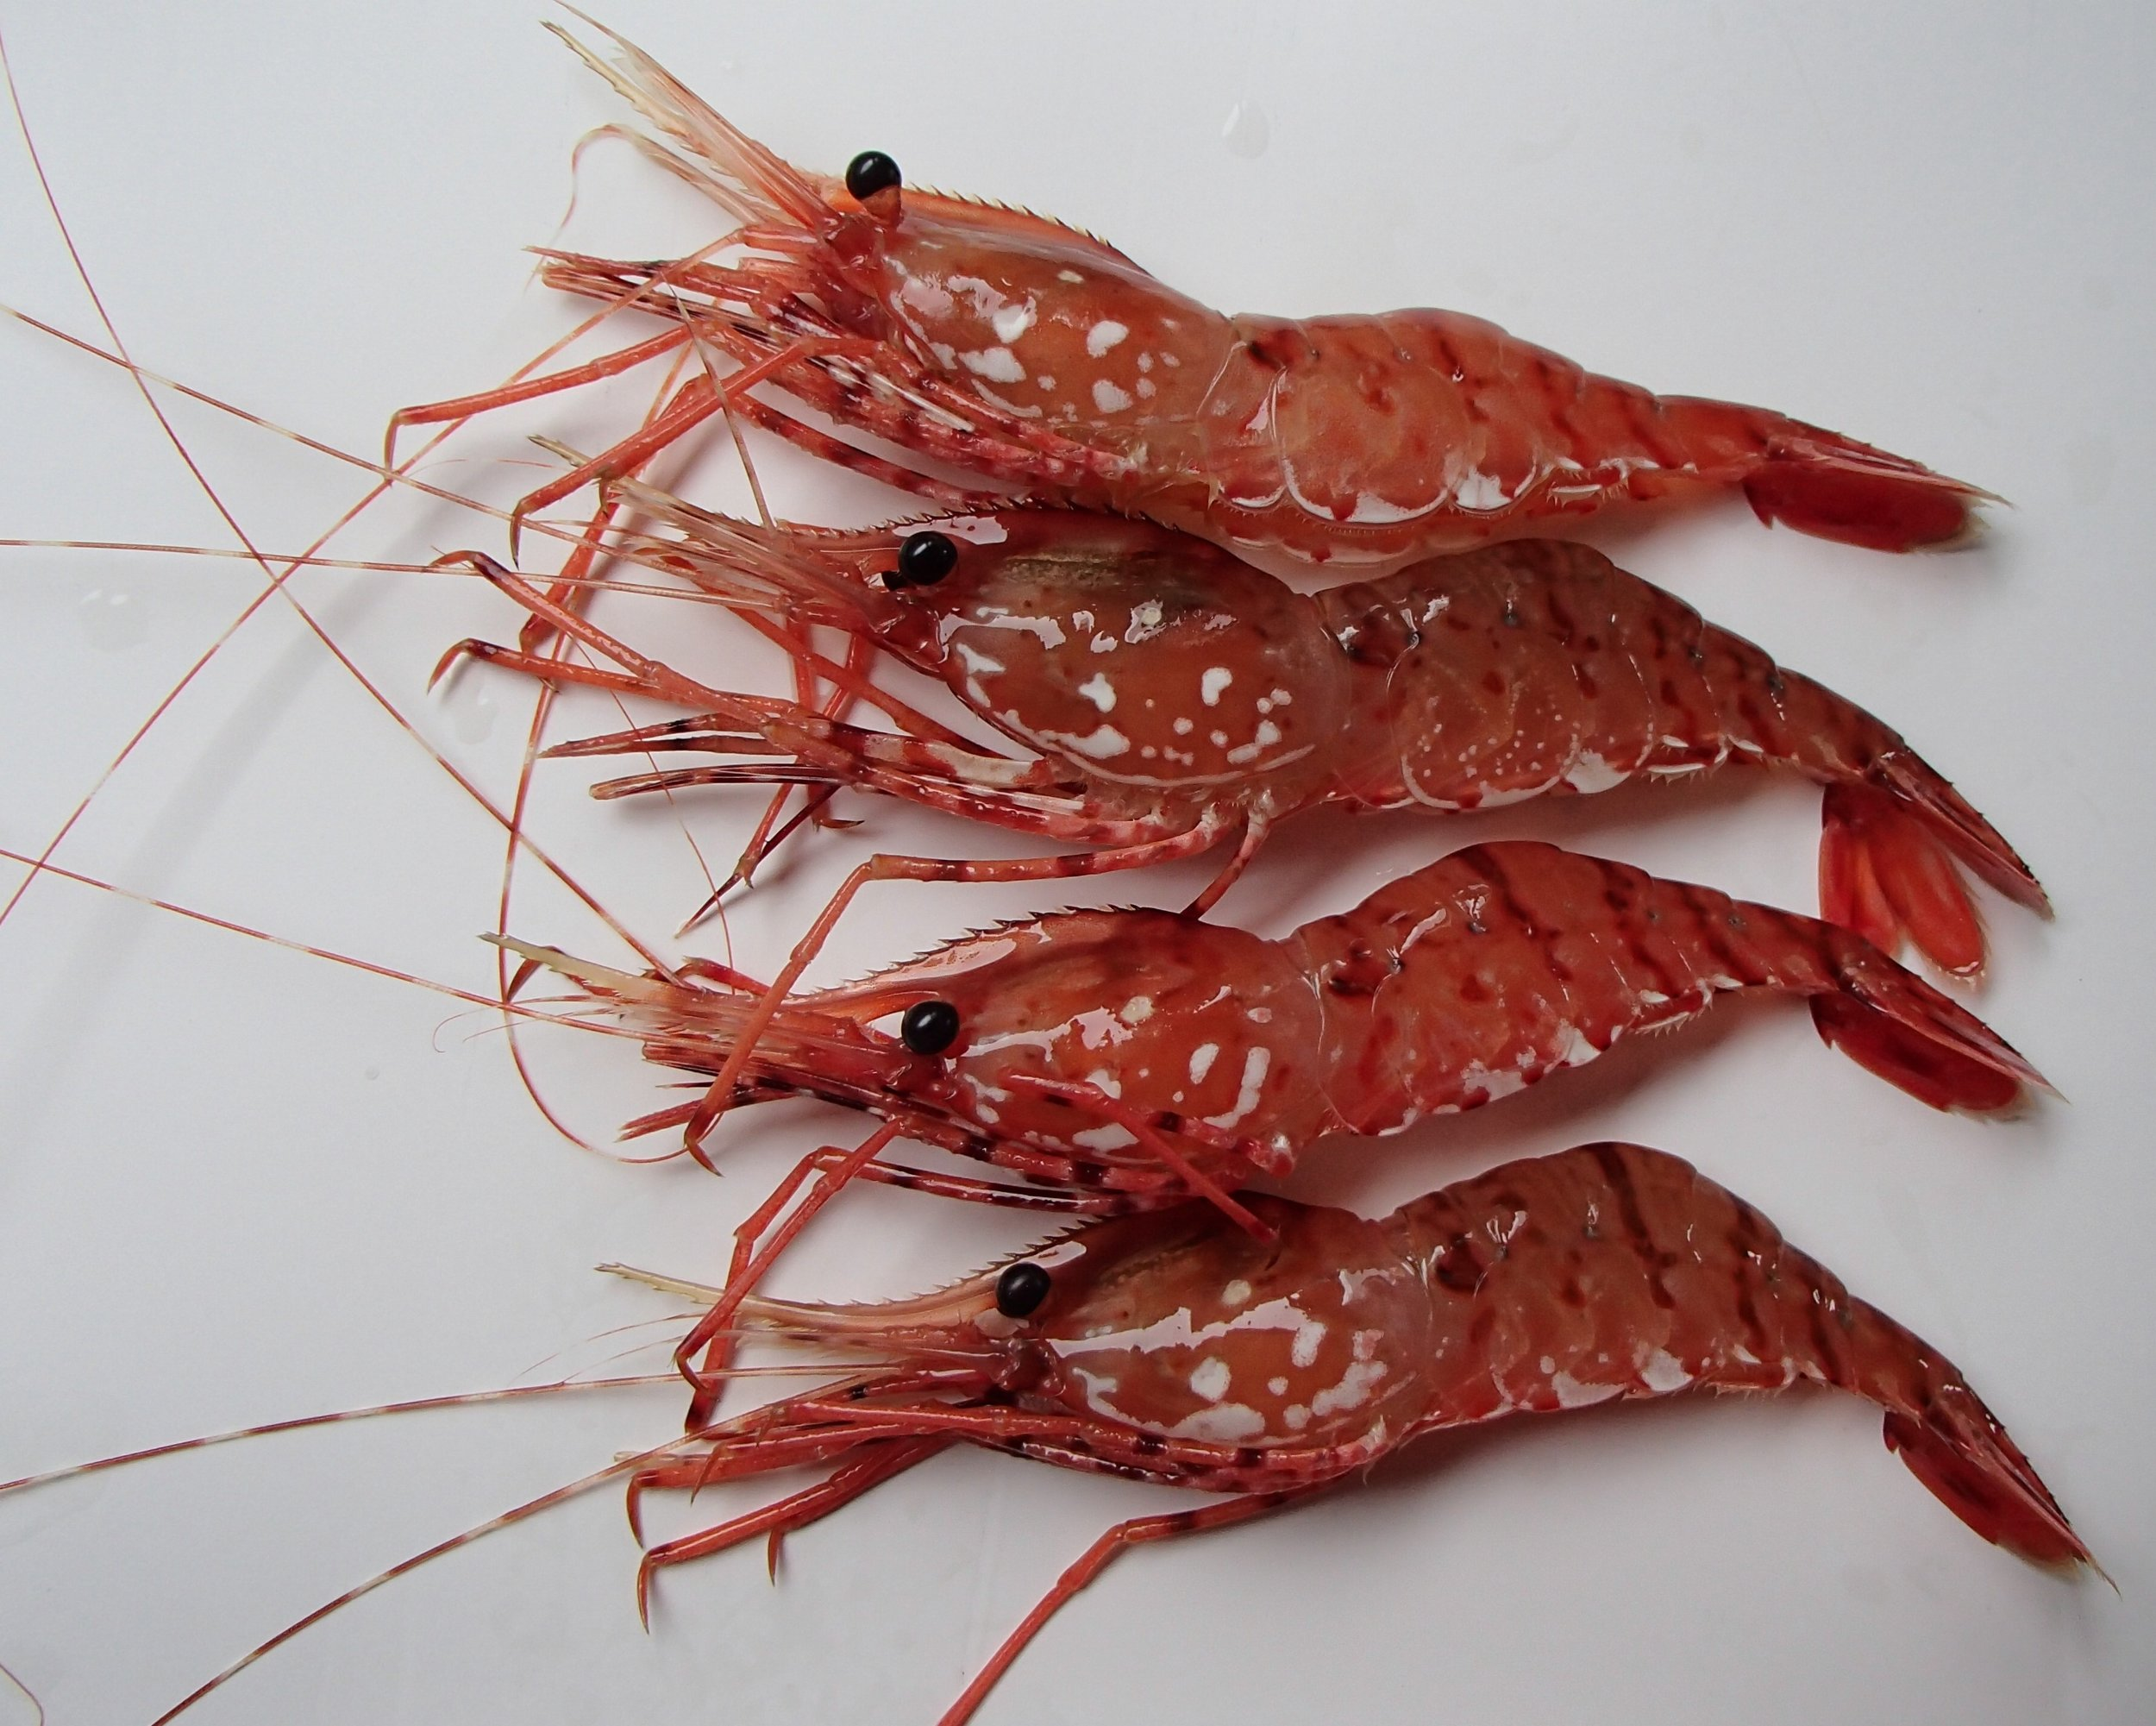 That wild-caught seafood is healthier than its farmed alternative due to its more diverse diet and freedom of range. -